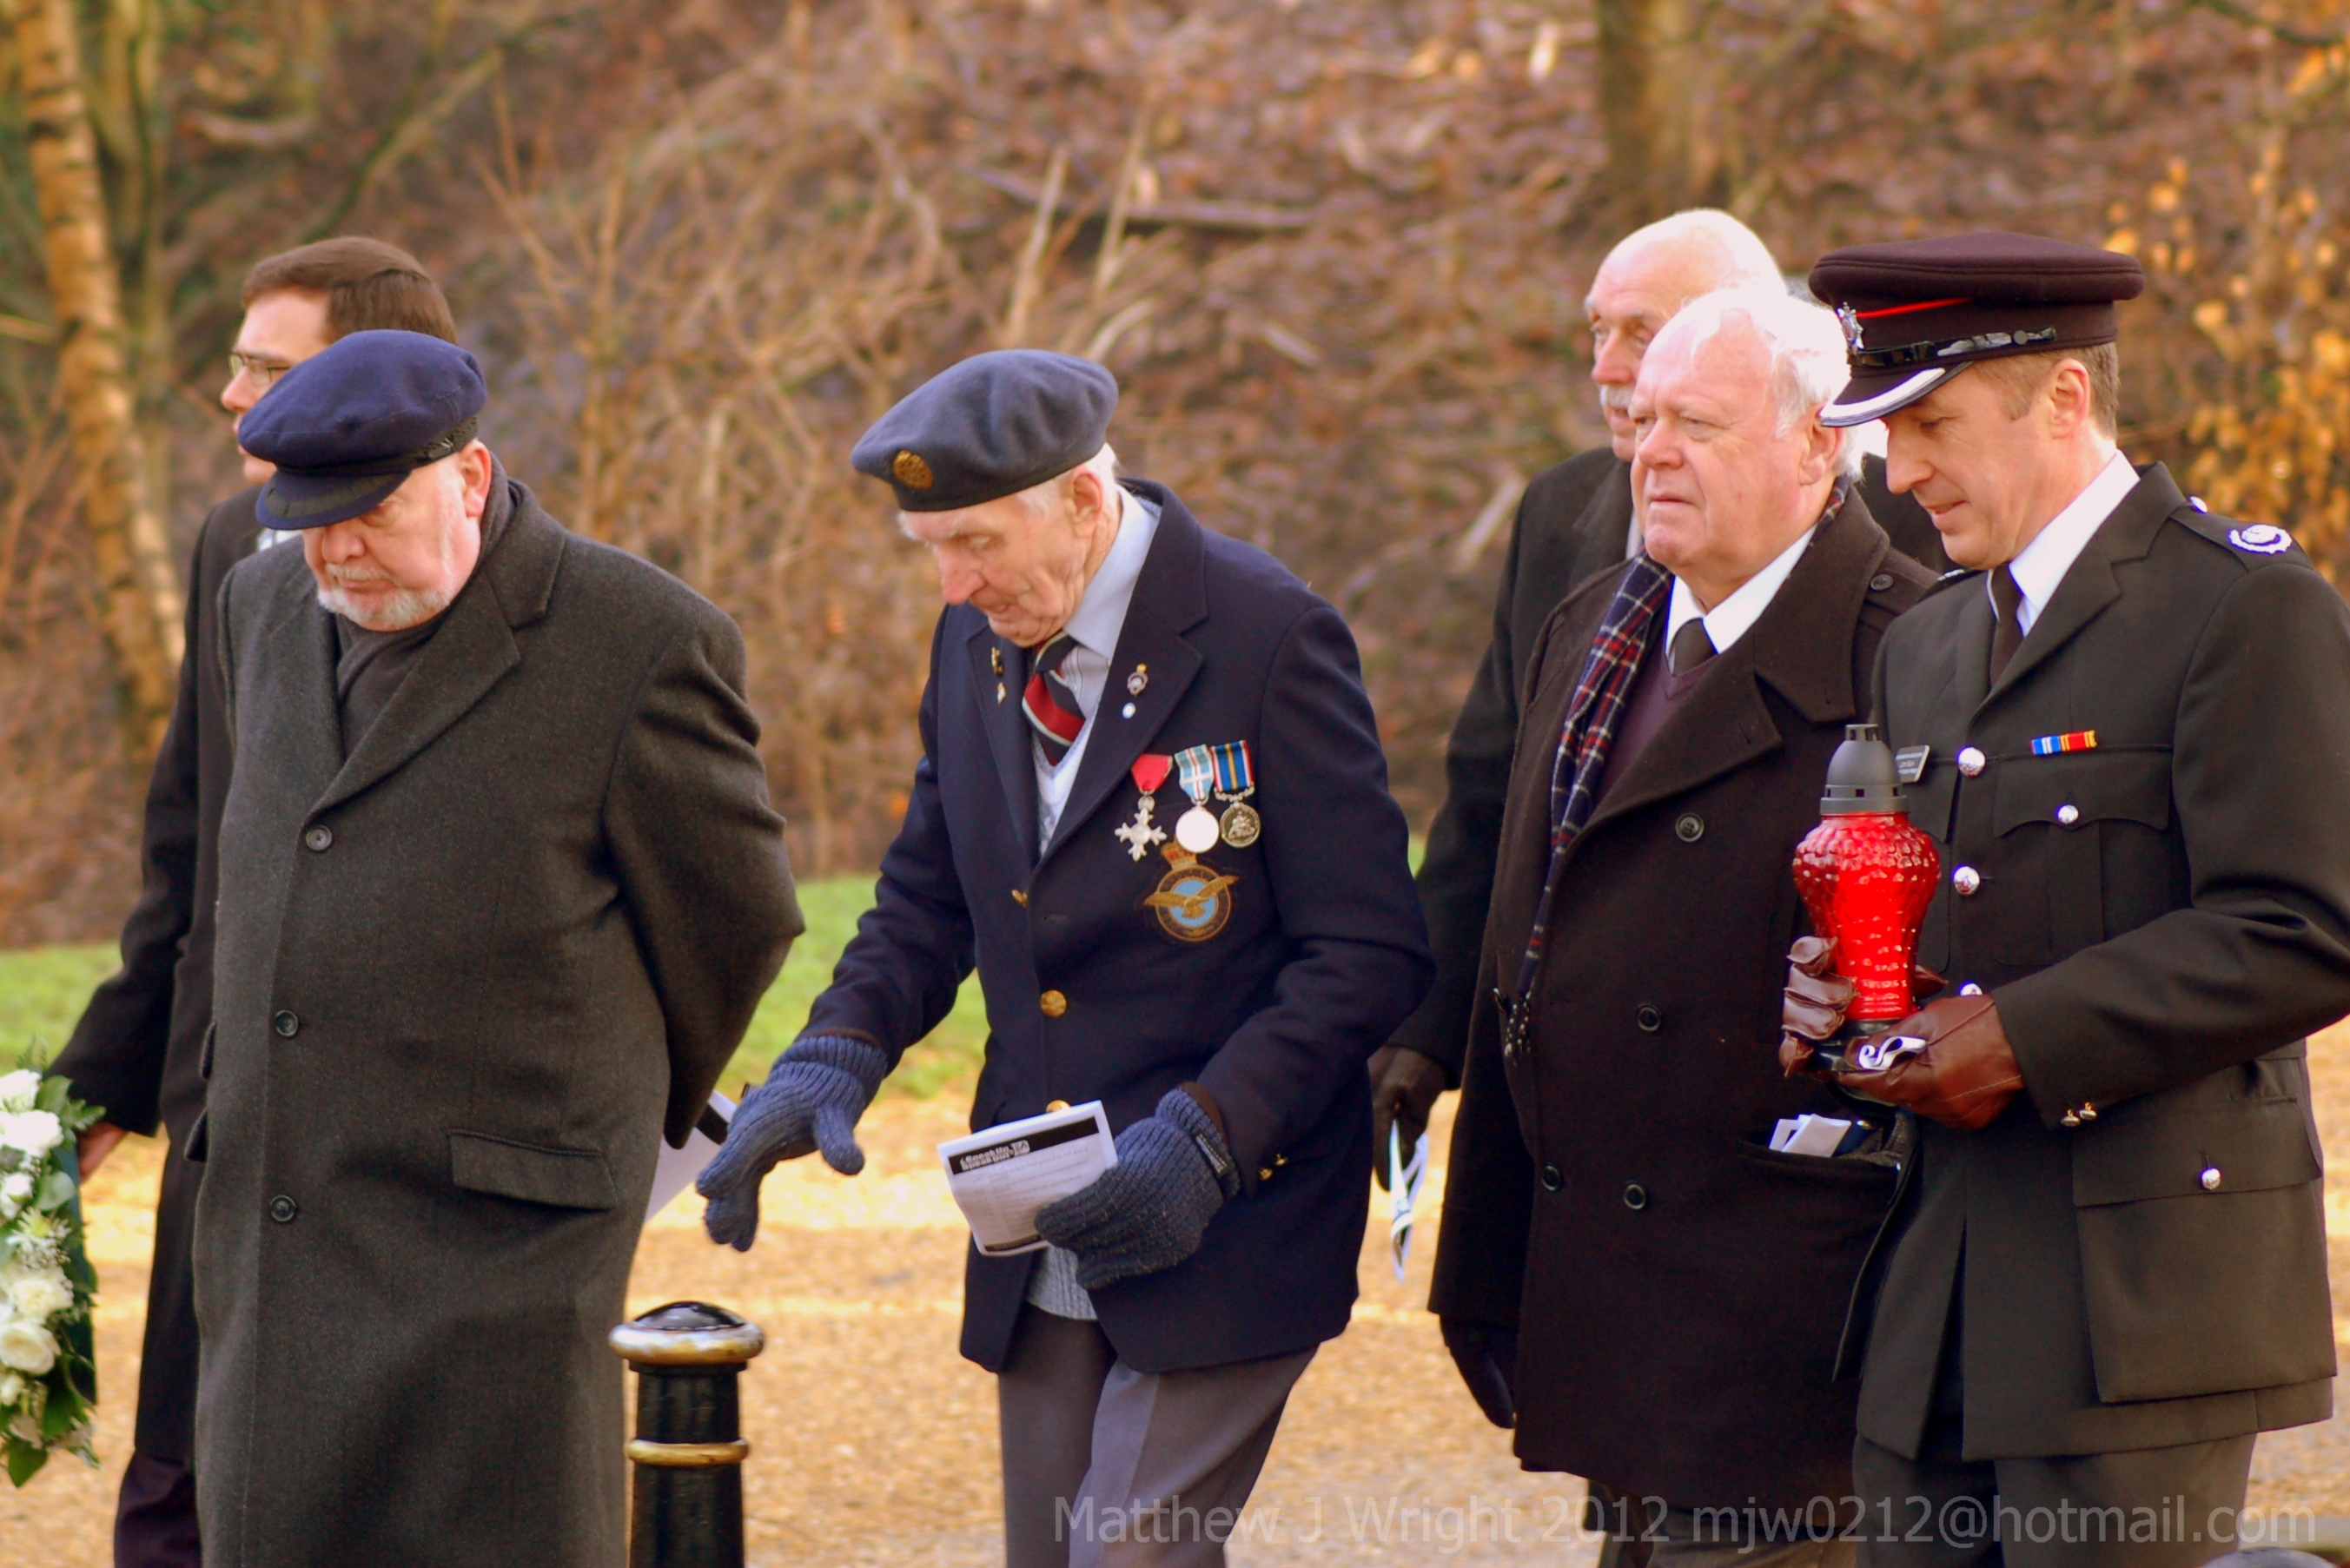 Holocaust Memorial Day 2012 service at The Cenotaph Astley